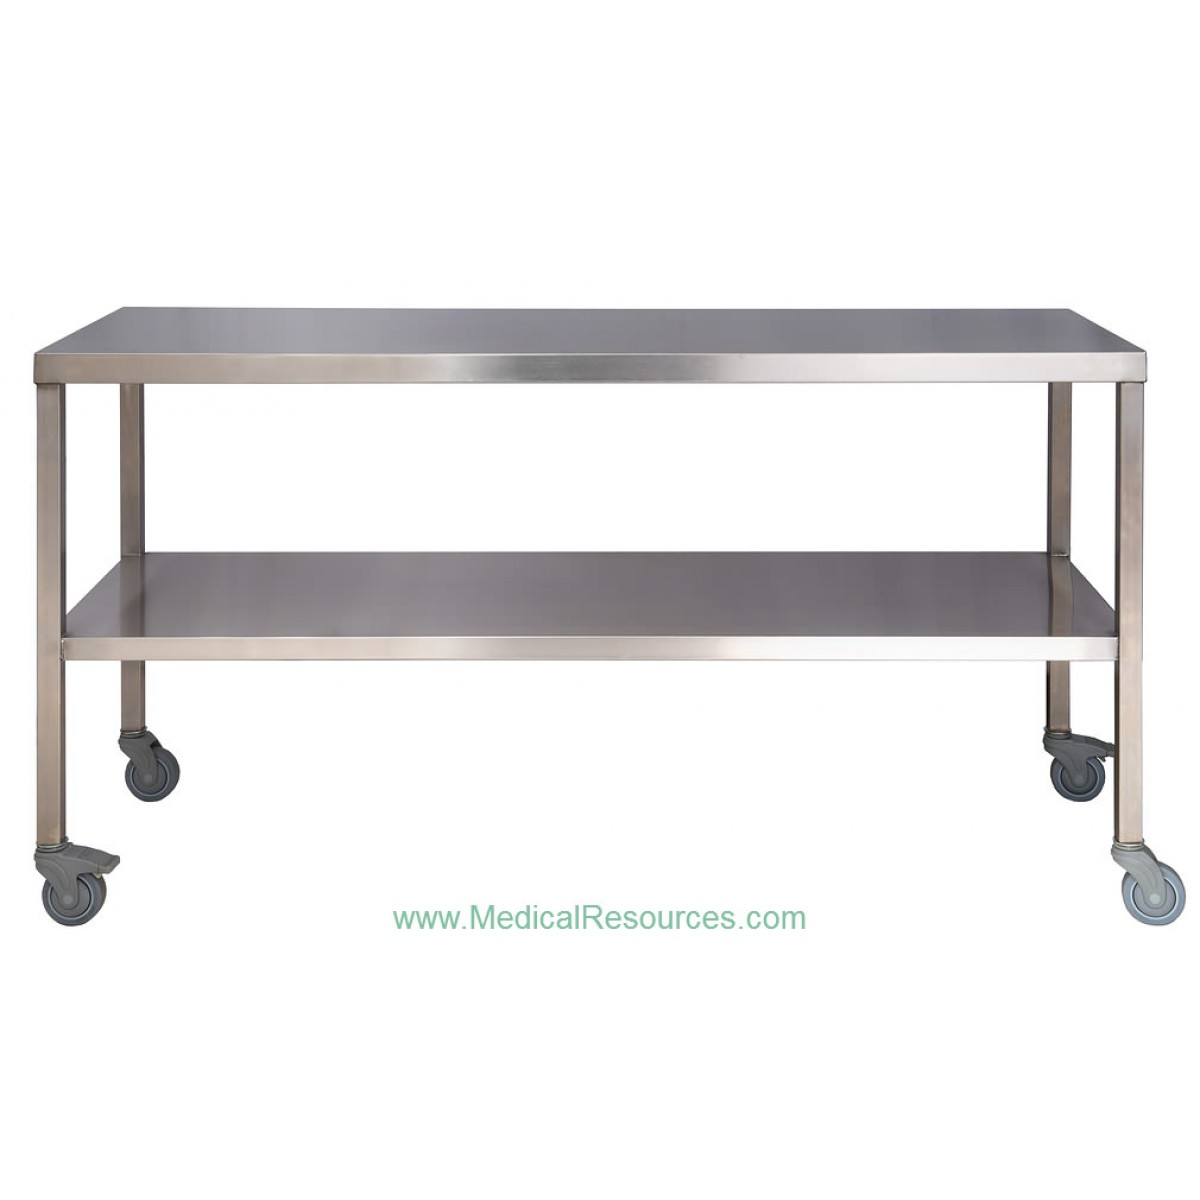 Medwurx operating room instrument back tables sale for Table in table